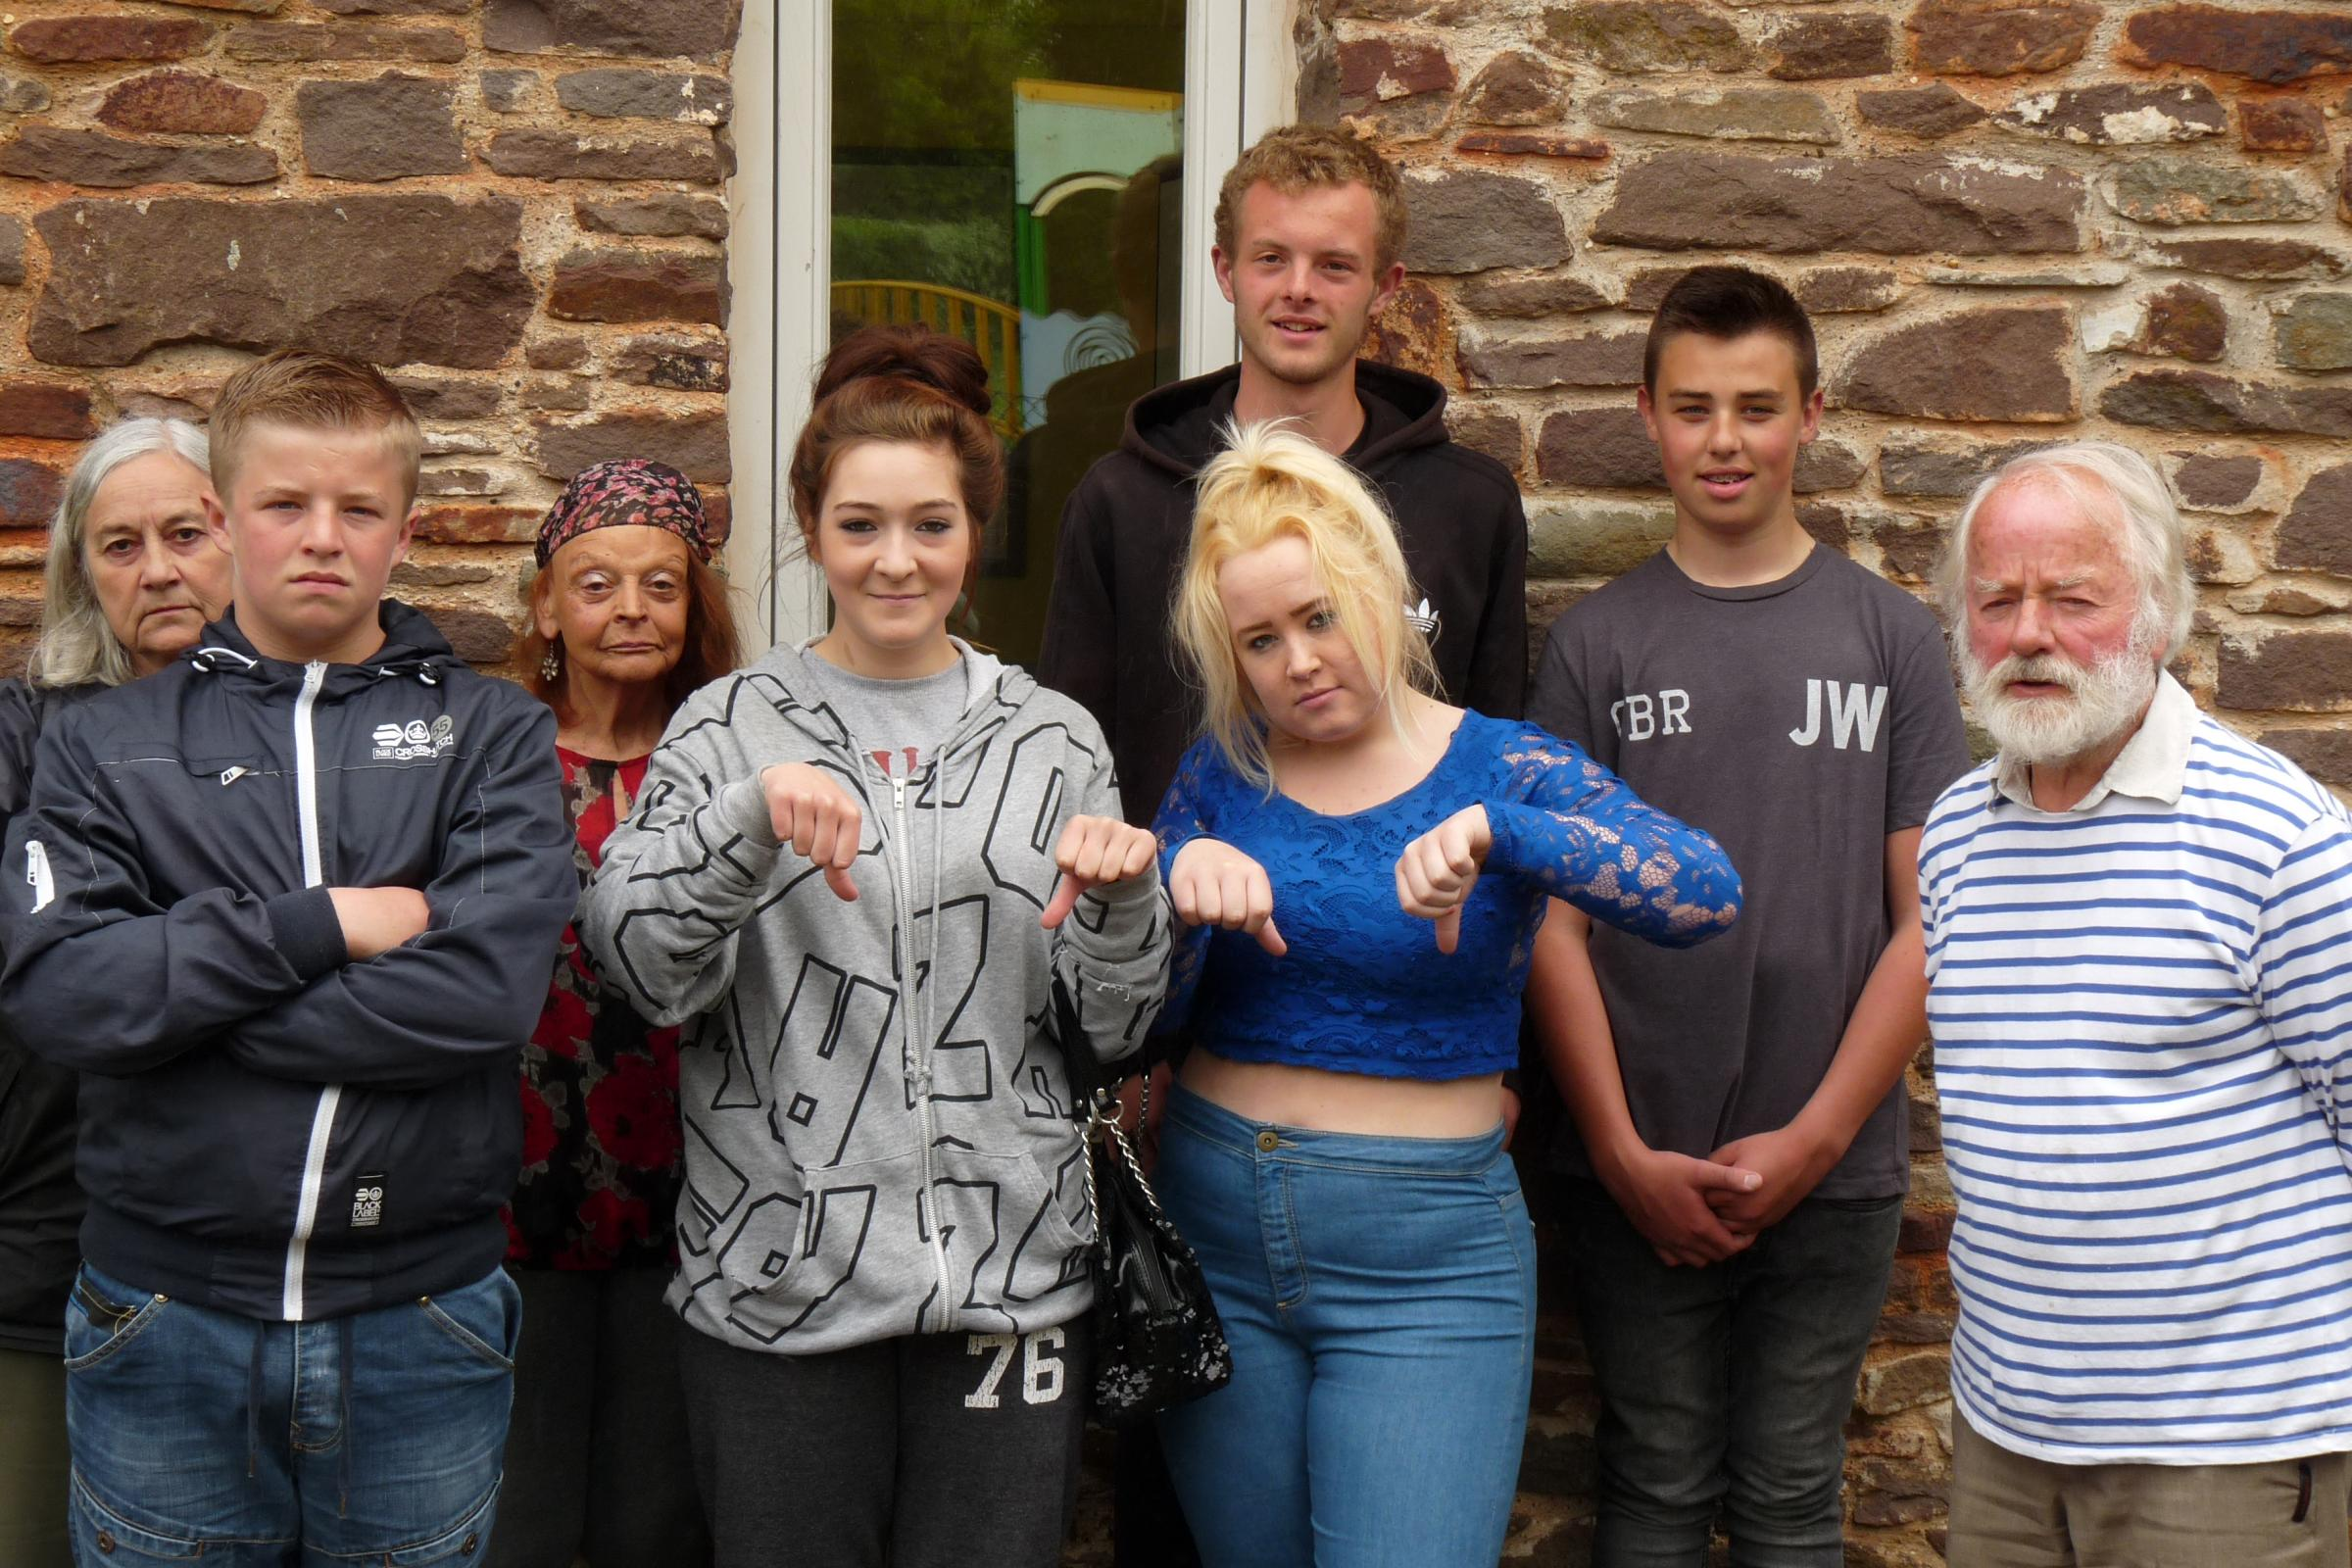 Jen Dunford, from Frampton Cotterell Village Action, Cllrs Pat and Dave Hockey with young people who attended Brockeridge Youth Centre